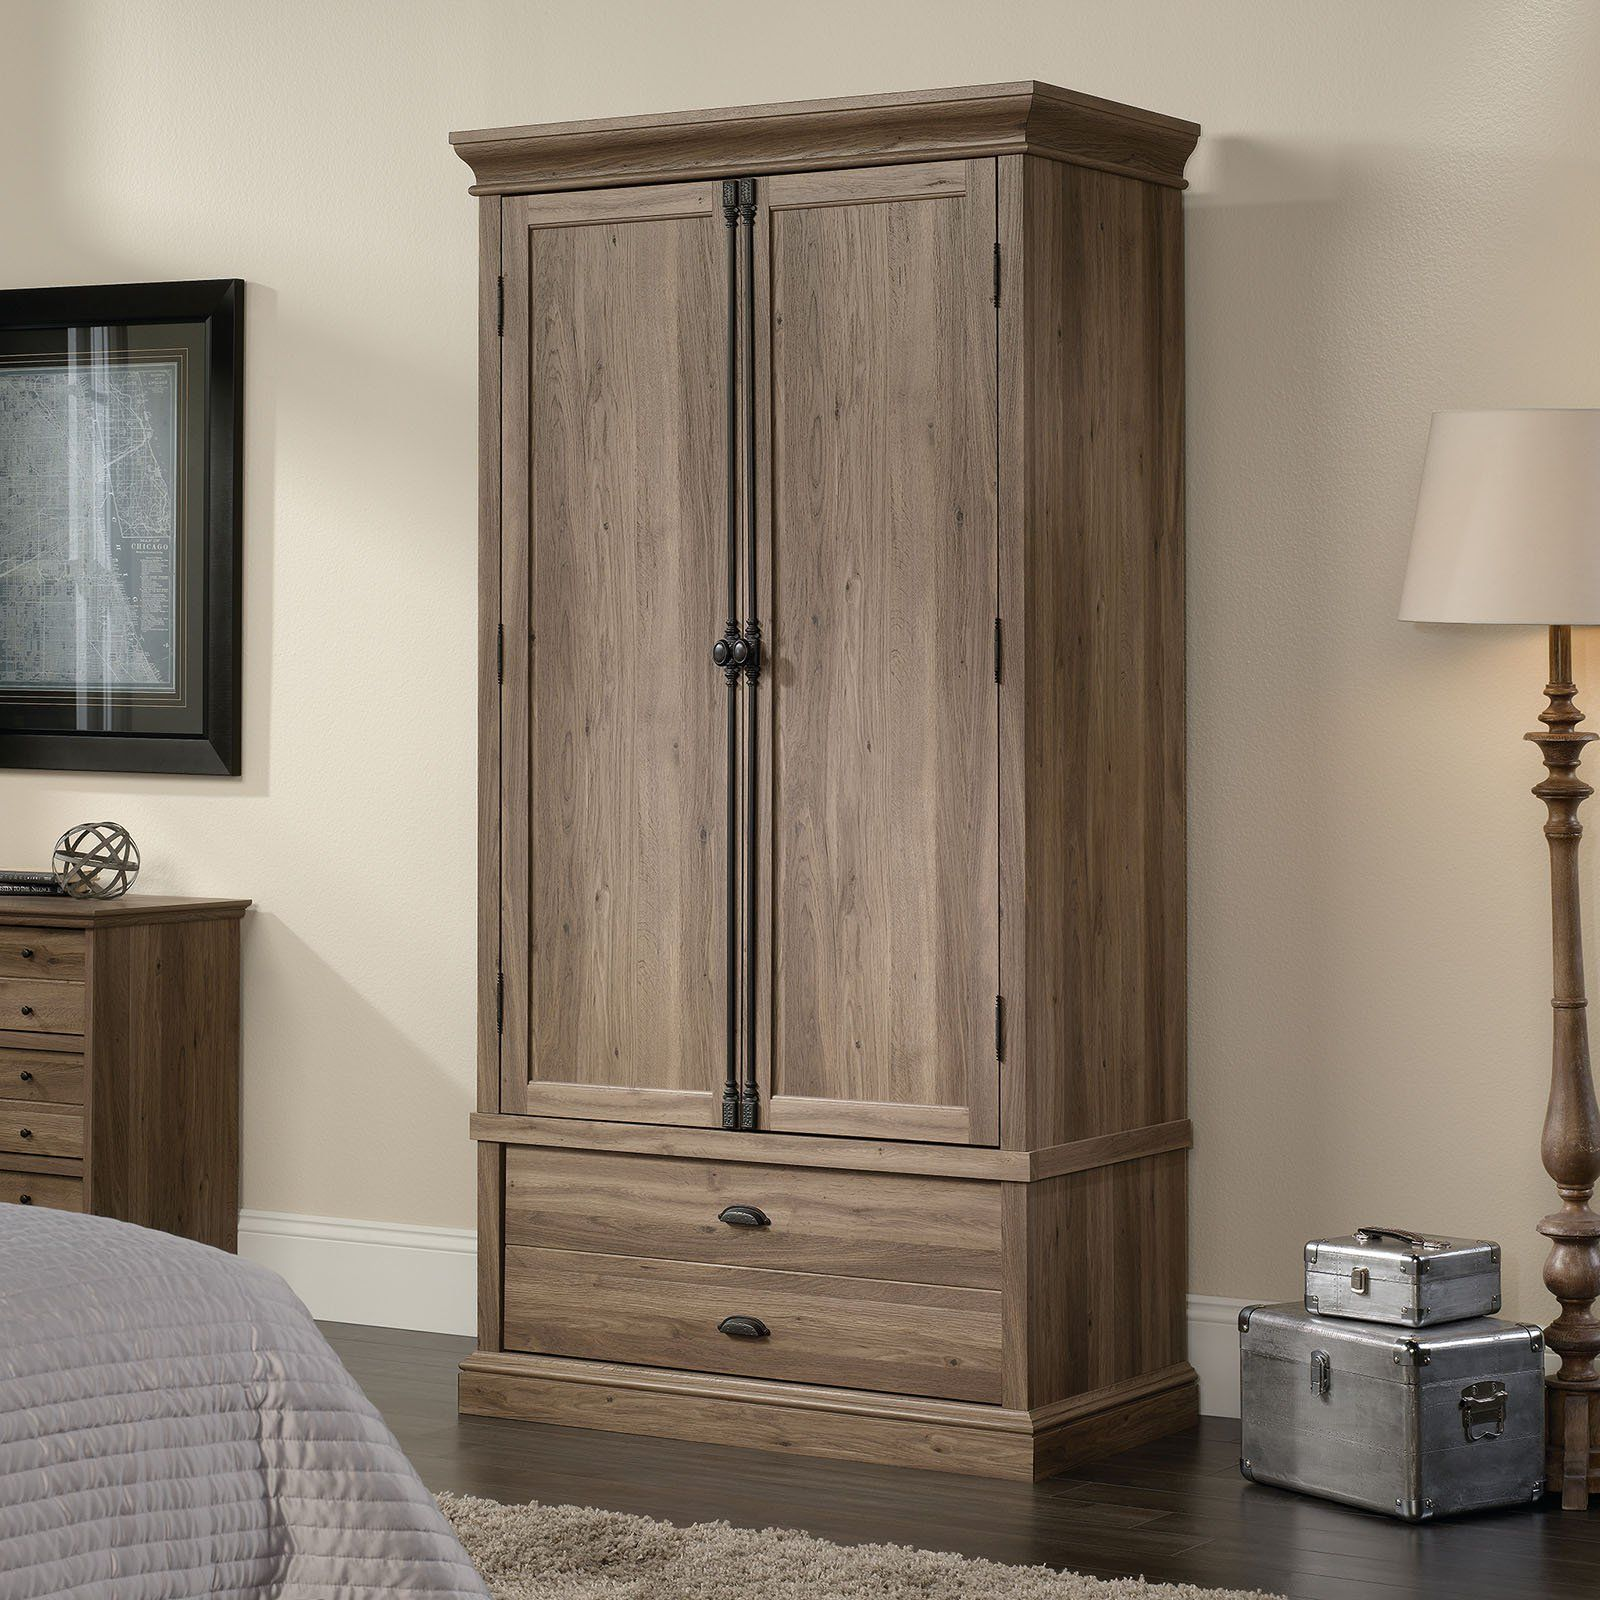 Sauder Barrister Lane Armoire   Salt Oak   When Youu0027re In Need Of Extra  Storage, Let The Sauder Barrister Lane Armoire  Salt Oak Help You House  Your ...